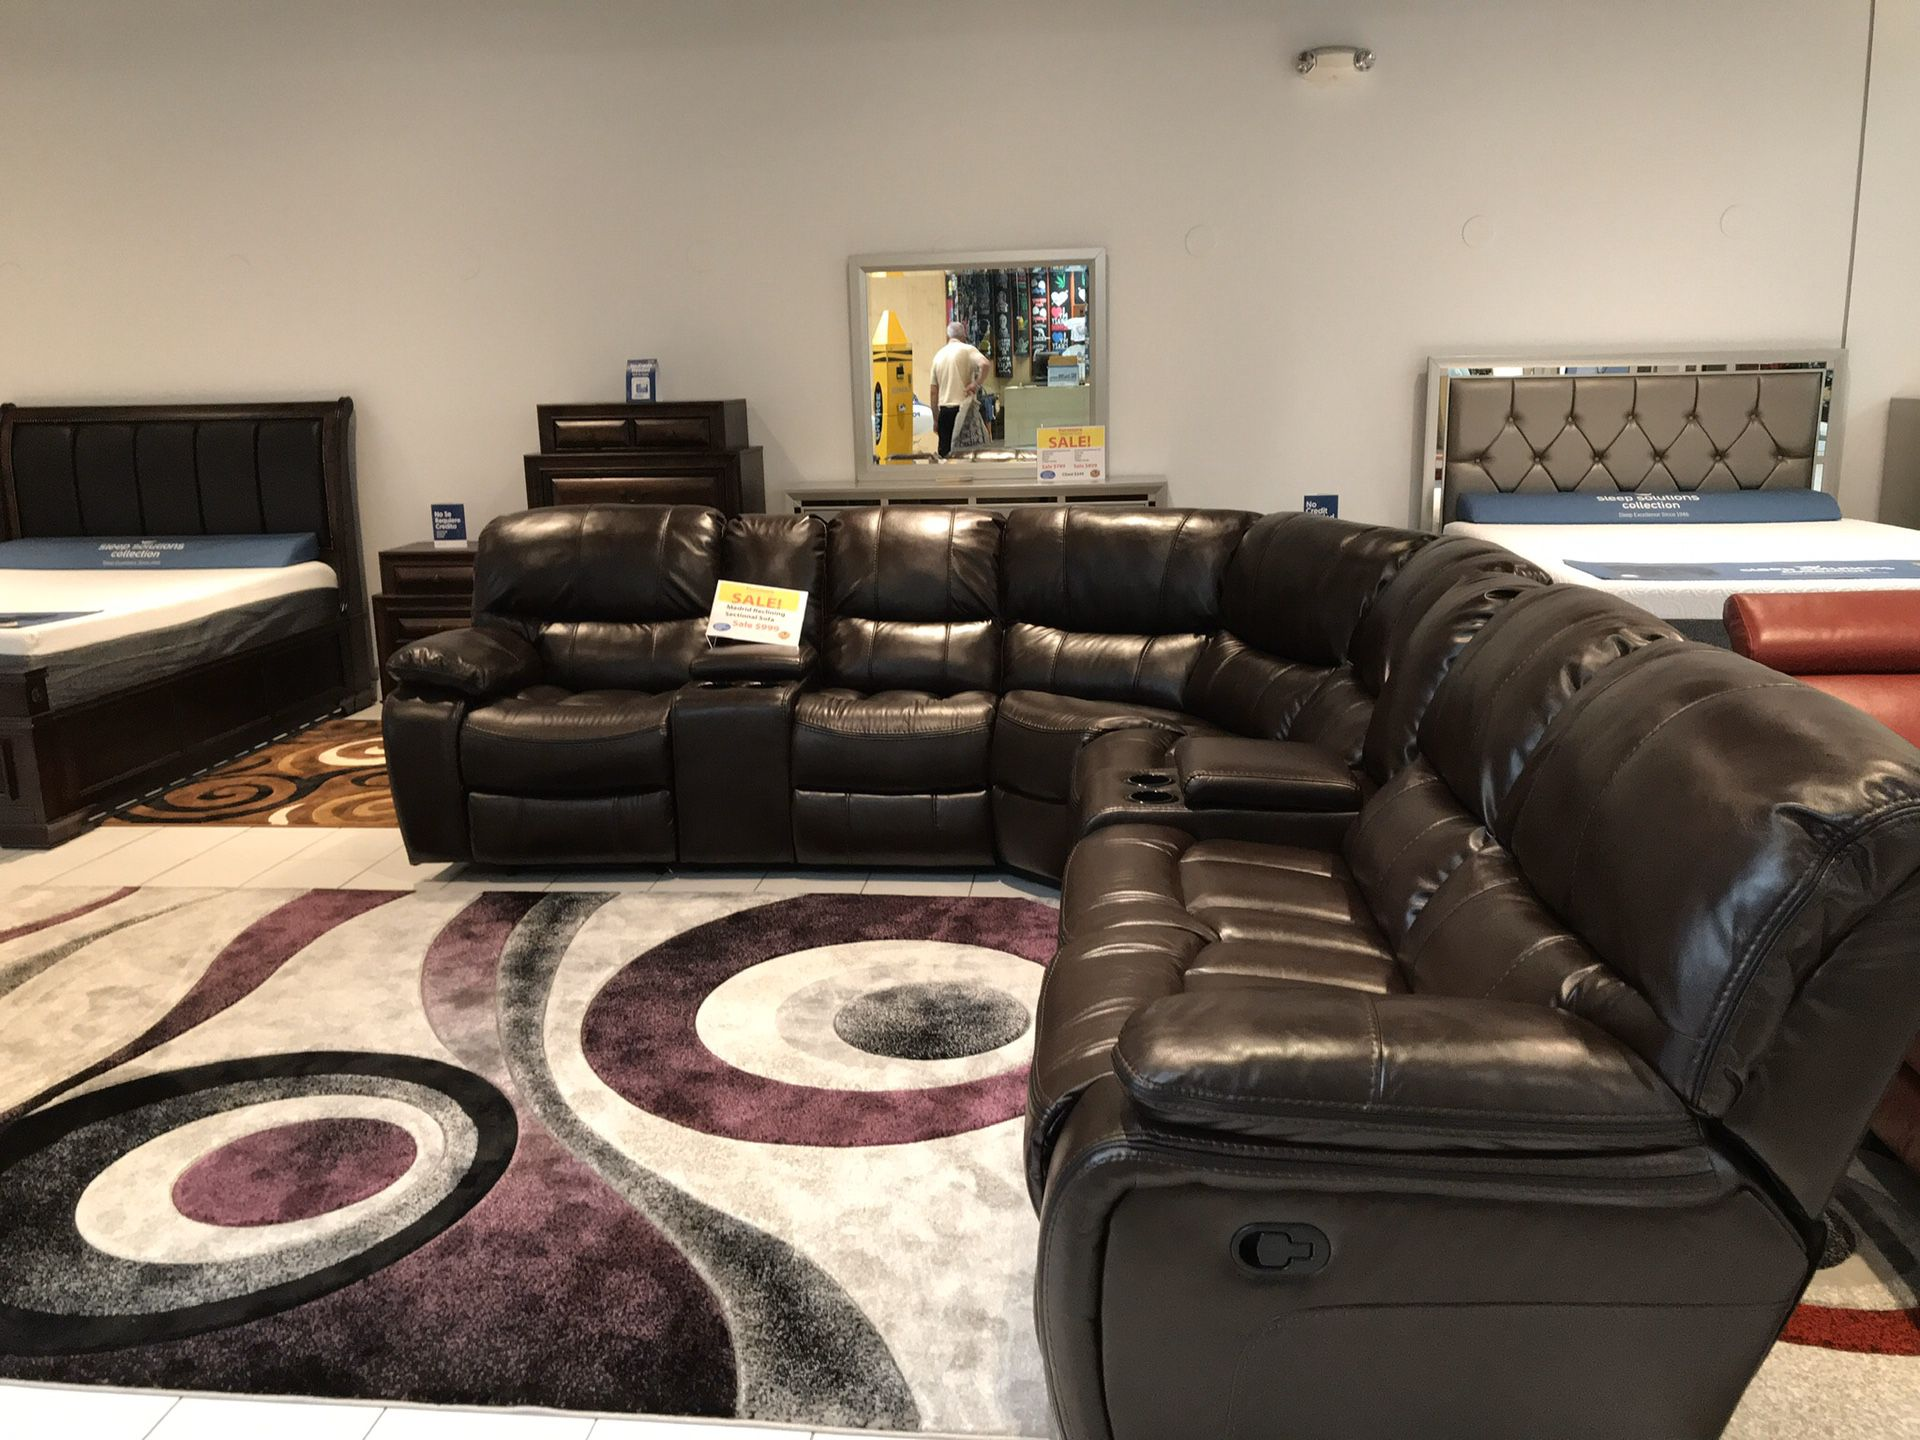 COMFY NEW MADRID MANUAL RECLINING SECTIONAL AVAILABLE IN BROWN$999 AND GRAY$1099. ADD ON NEW DESIGN AREA RUGS $149! DOORBUSTER SALE EVENT! SAME DAY D